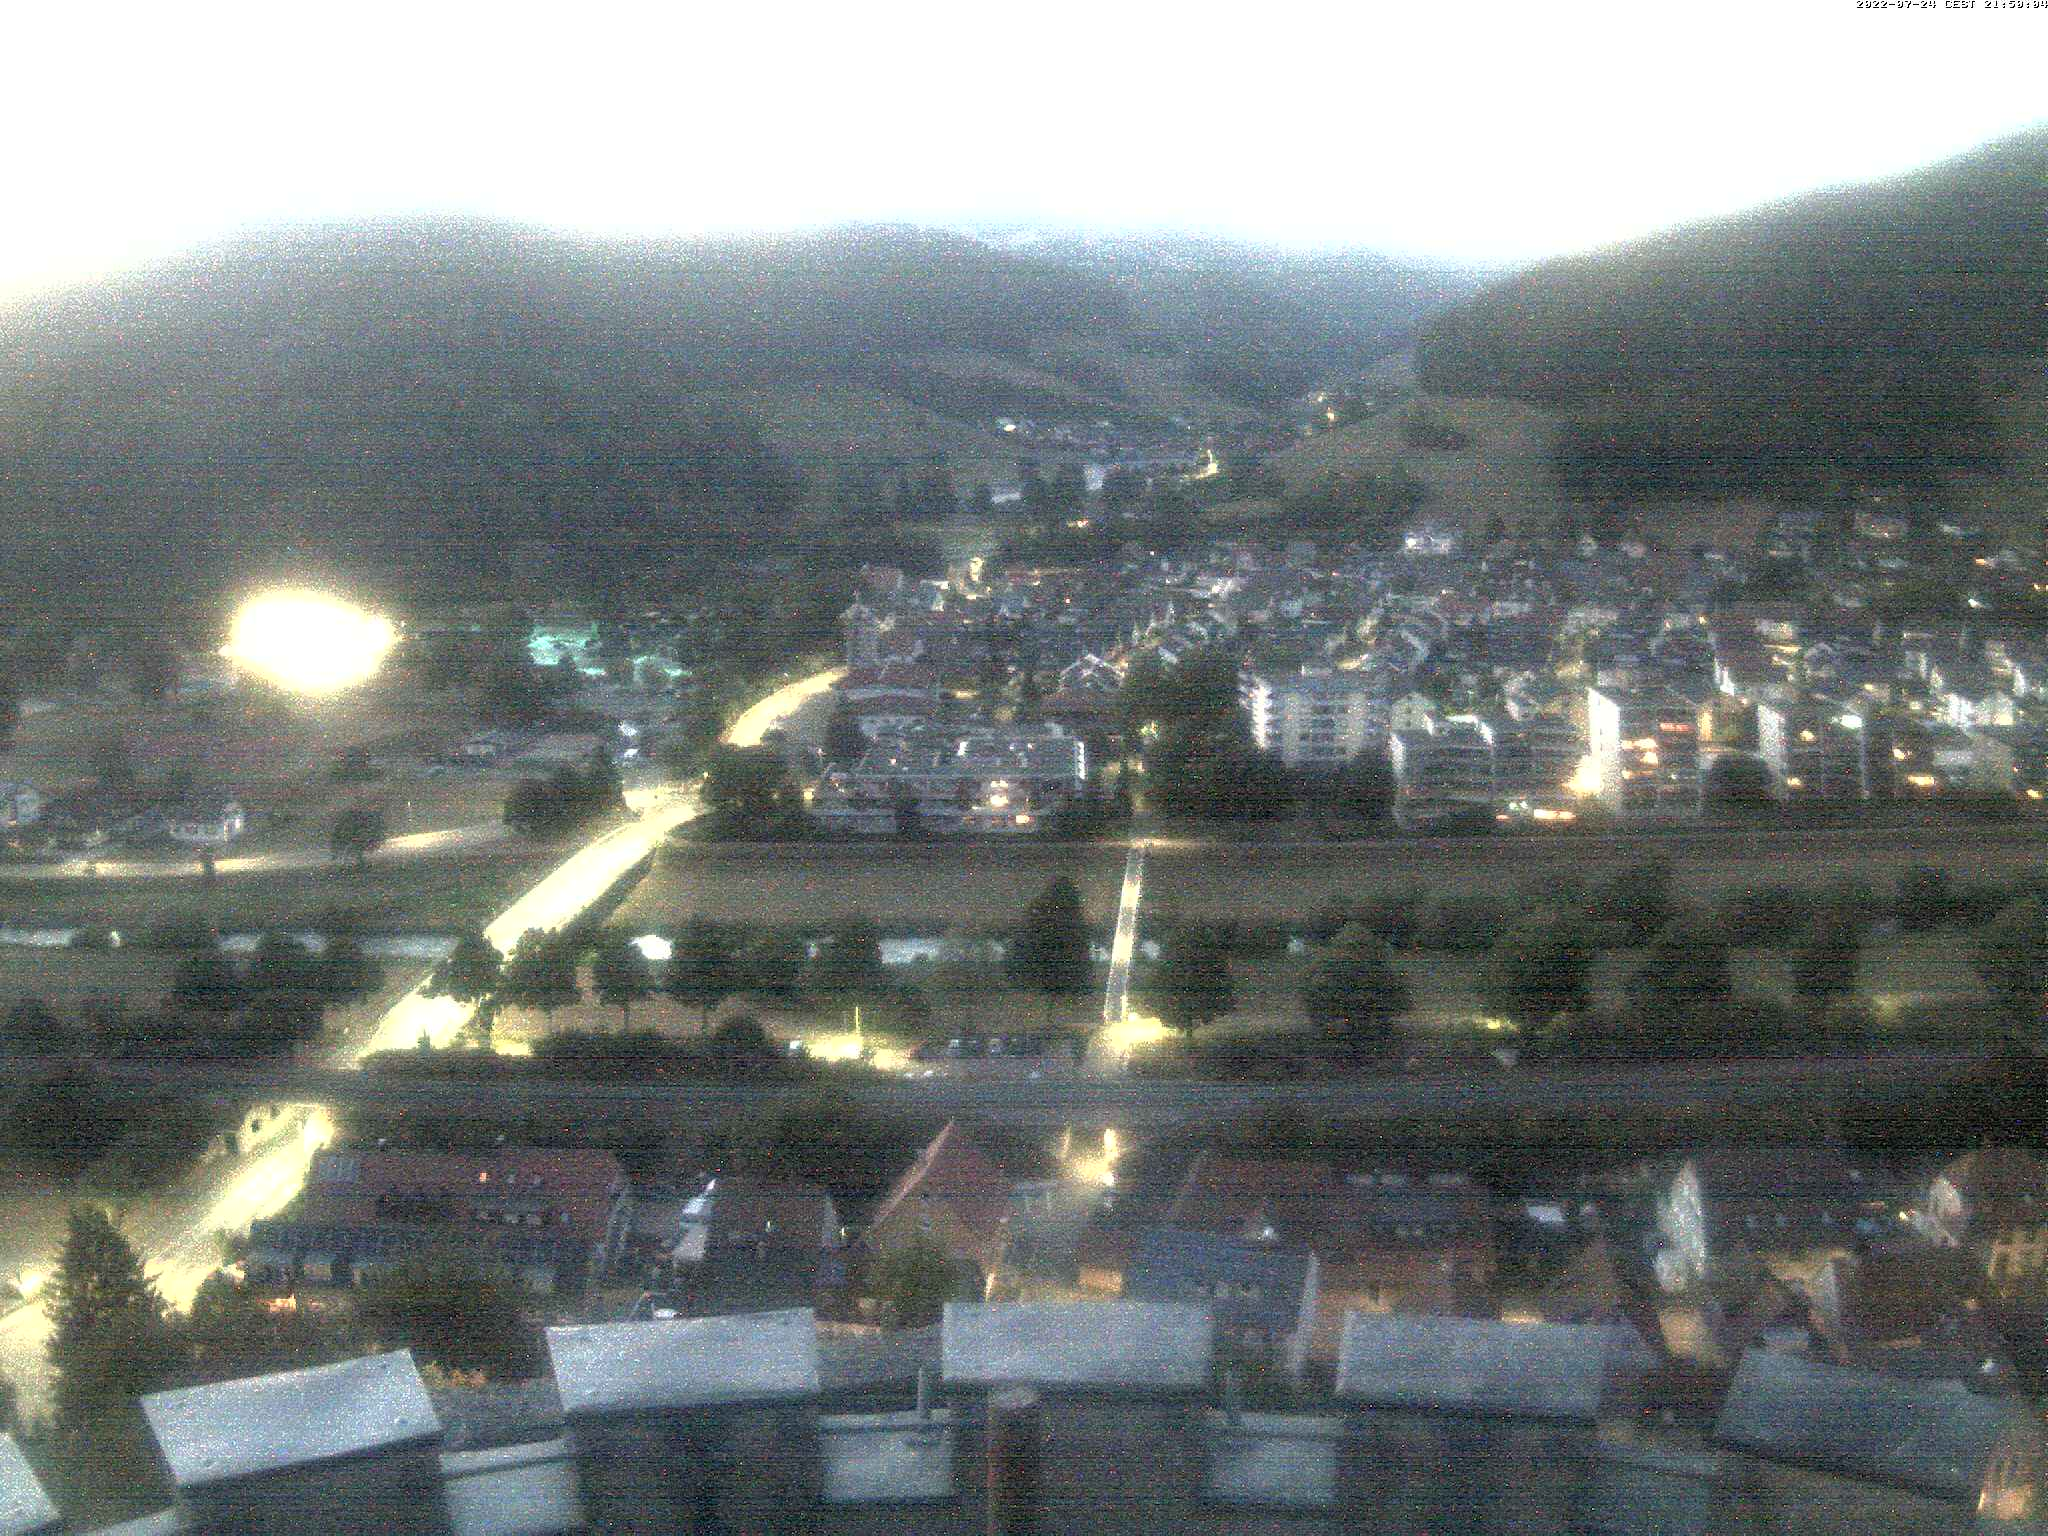 http://webcam-hausach.land-in-sicht.com/webcam/current114.jpg